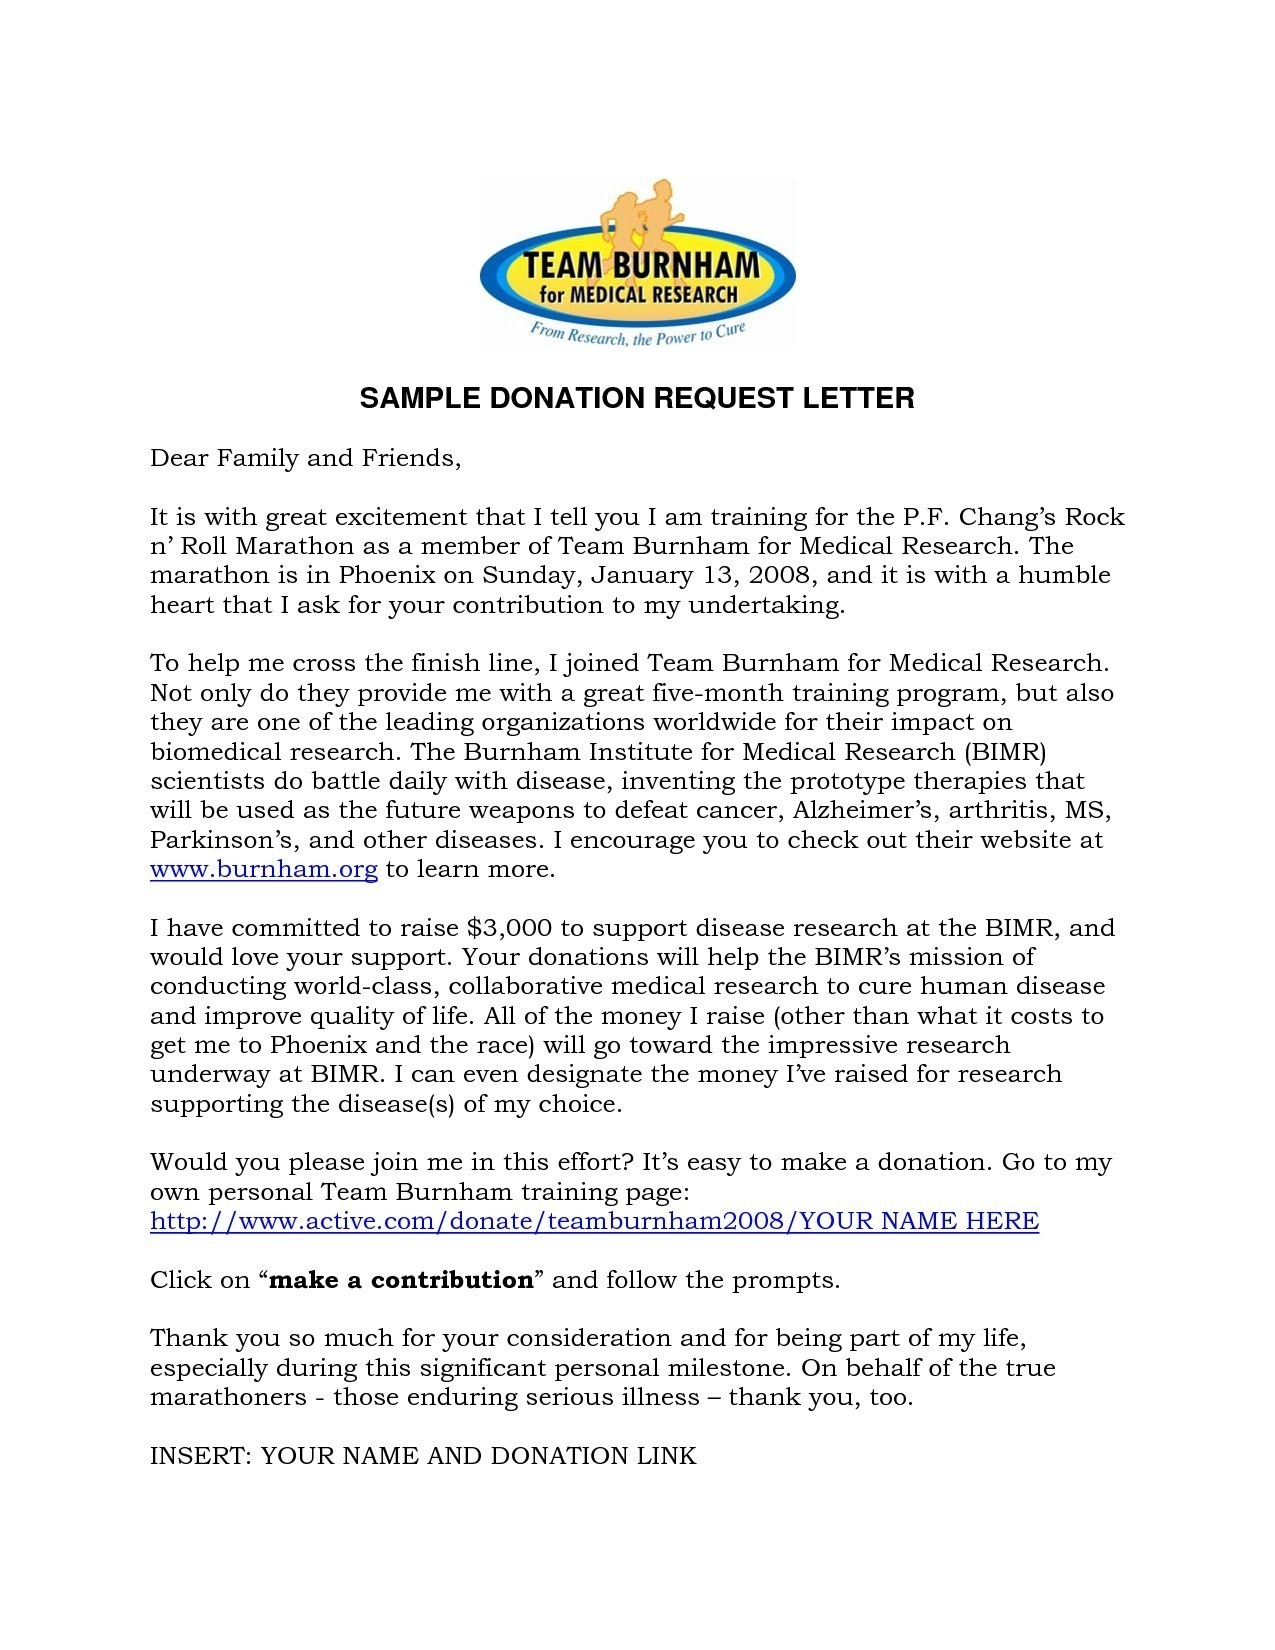 Donation Request Letter Template Samples Letter Templates